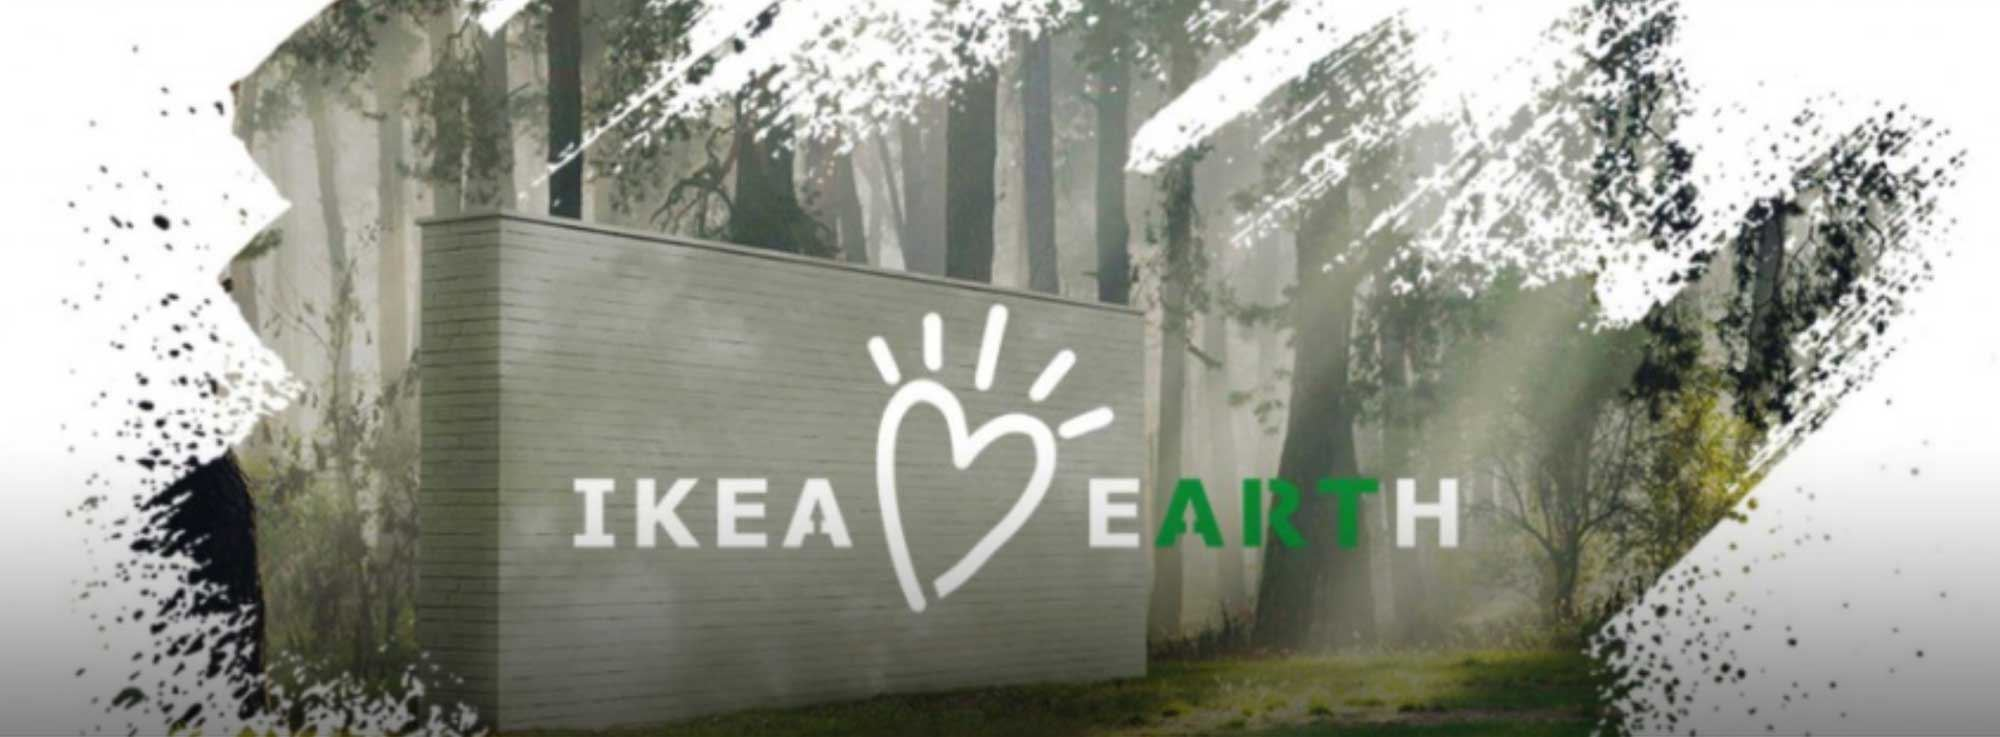 Bari: Ikea love earth